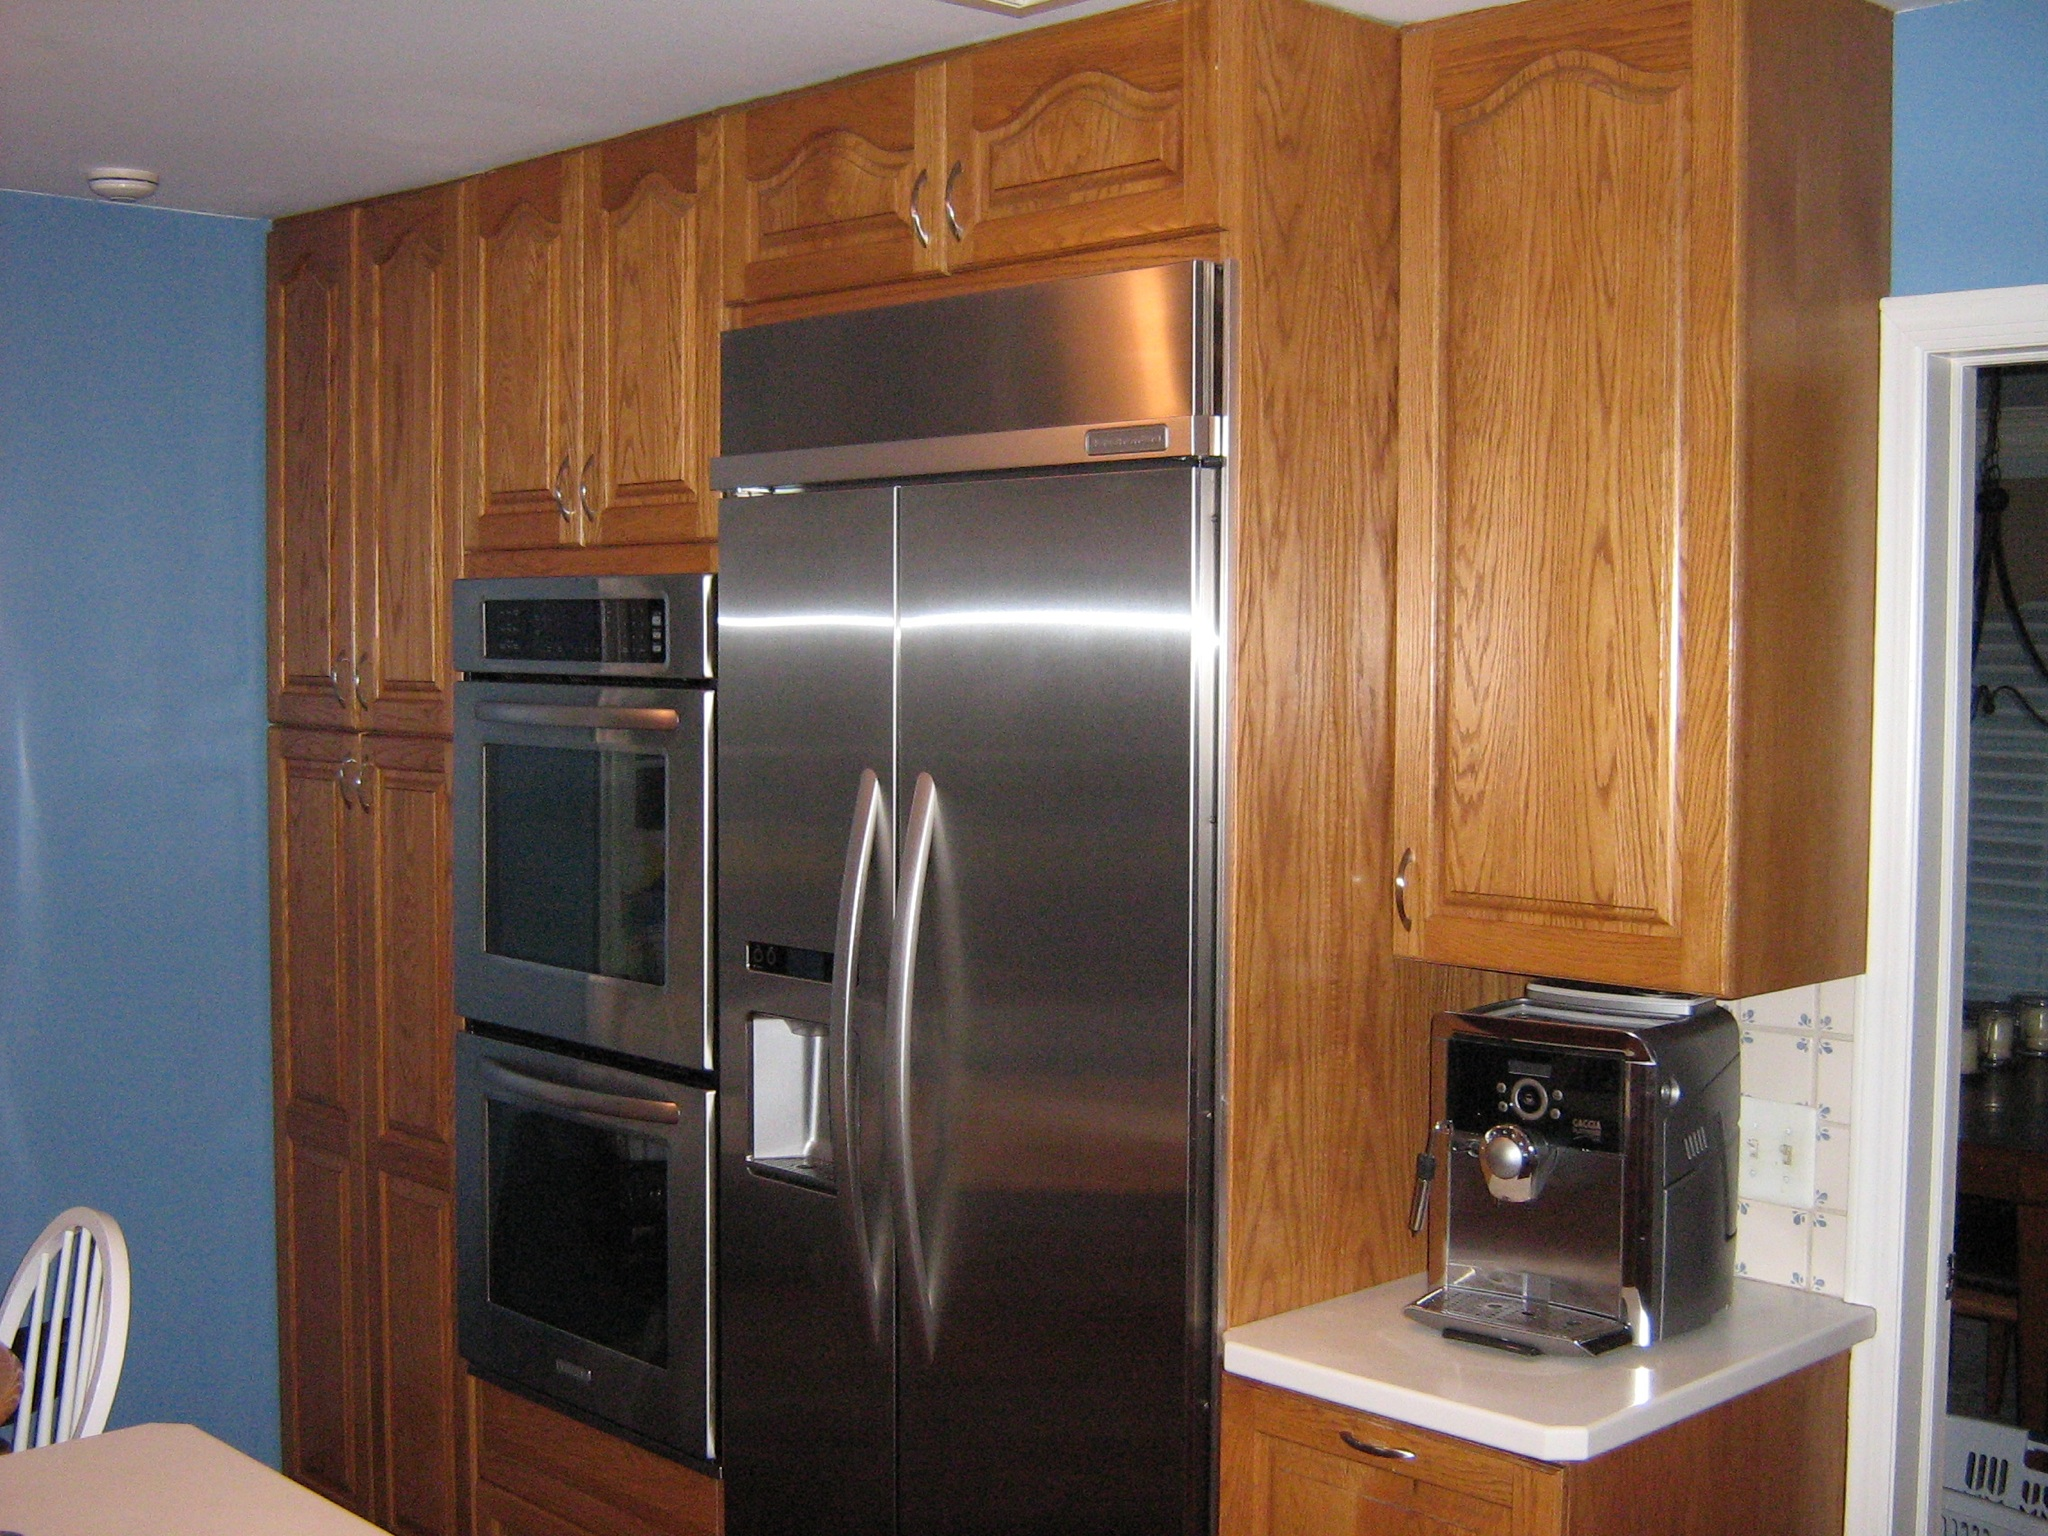 Space Saver Cabinets Kitchen 4 Kitchen Space Savers For When You Just Don 39t Have The Room